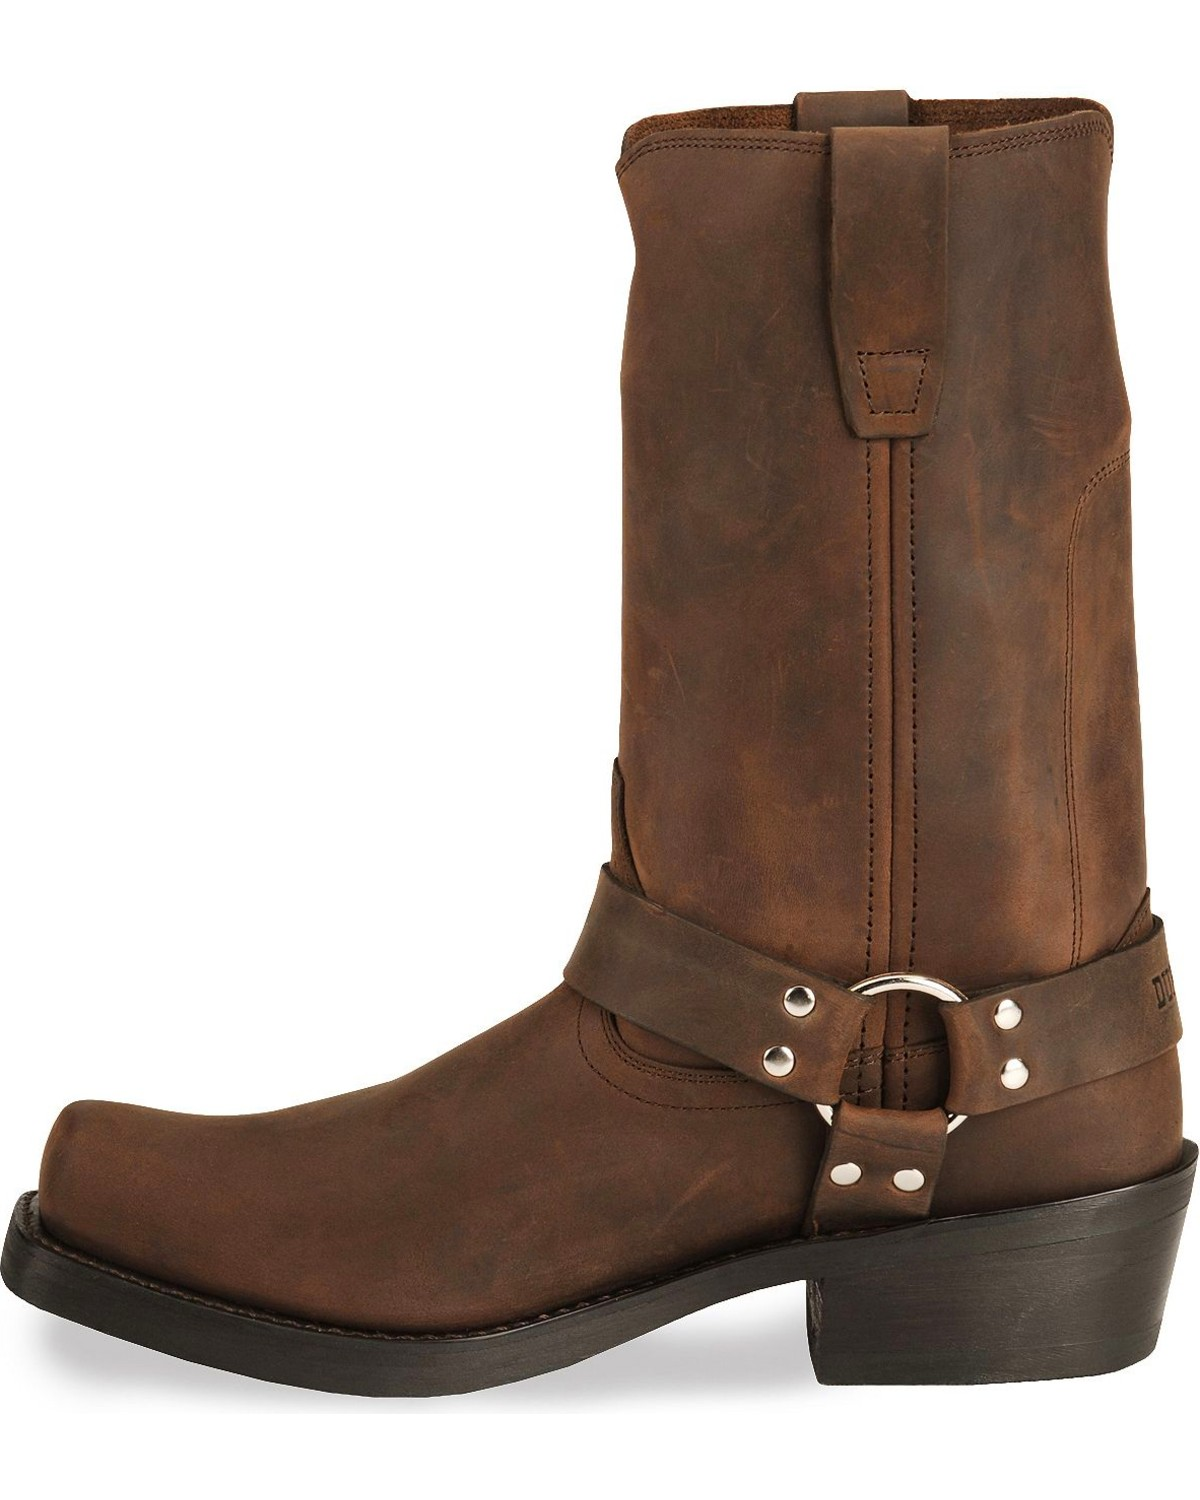 Durango Harness Cowboy Boots - Square Toe - Country Outfitter